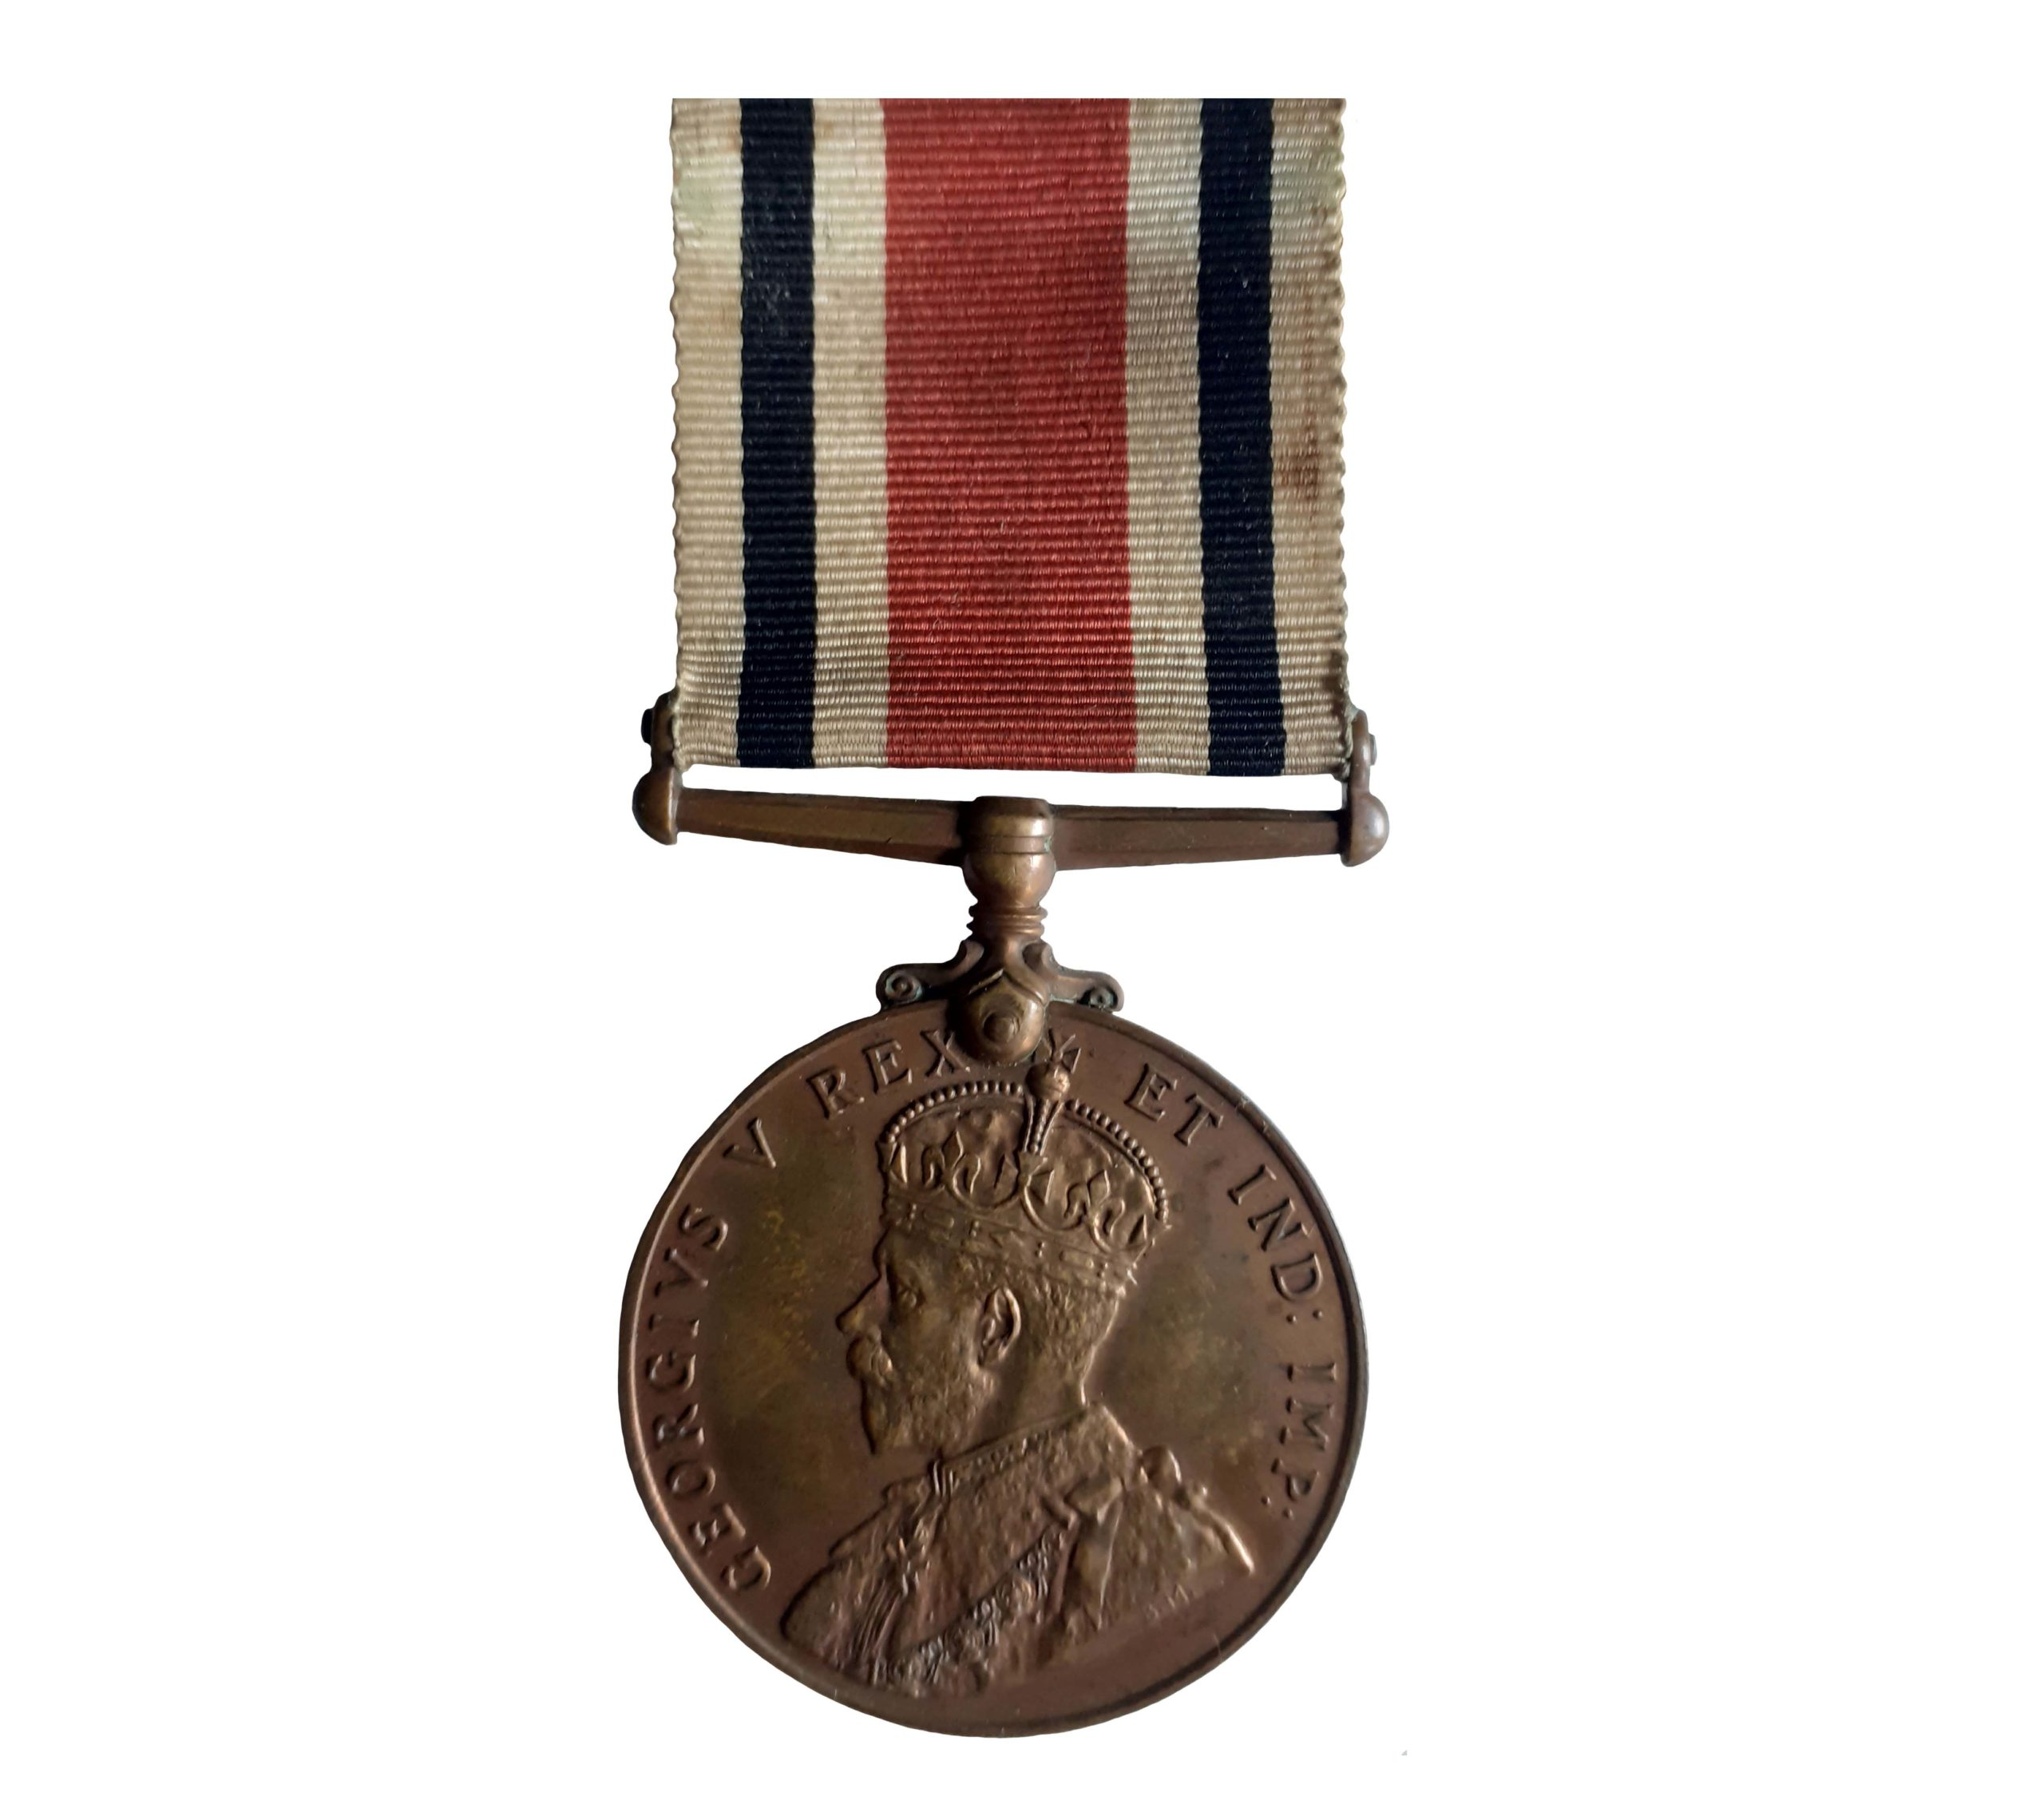 Special Constabulary Long Service Medal, GVR, to William J. Garland